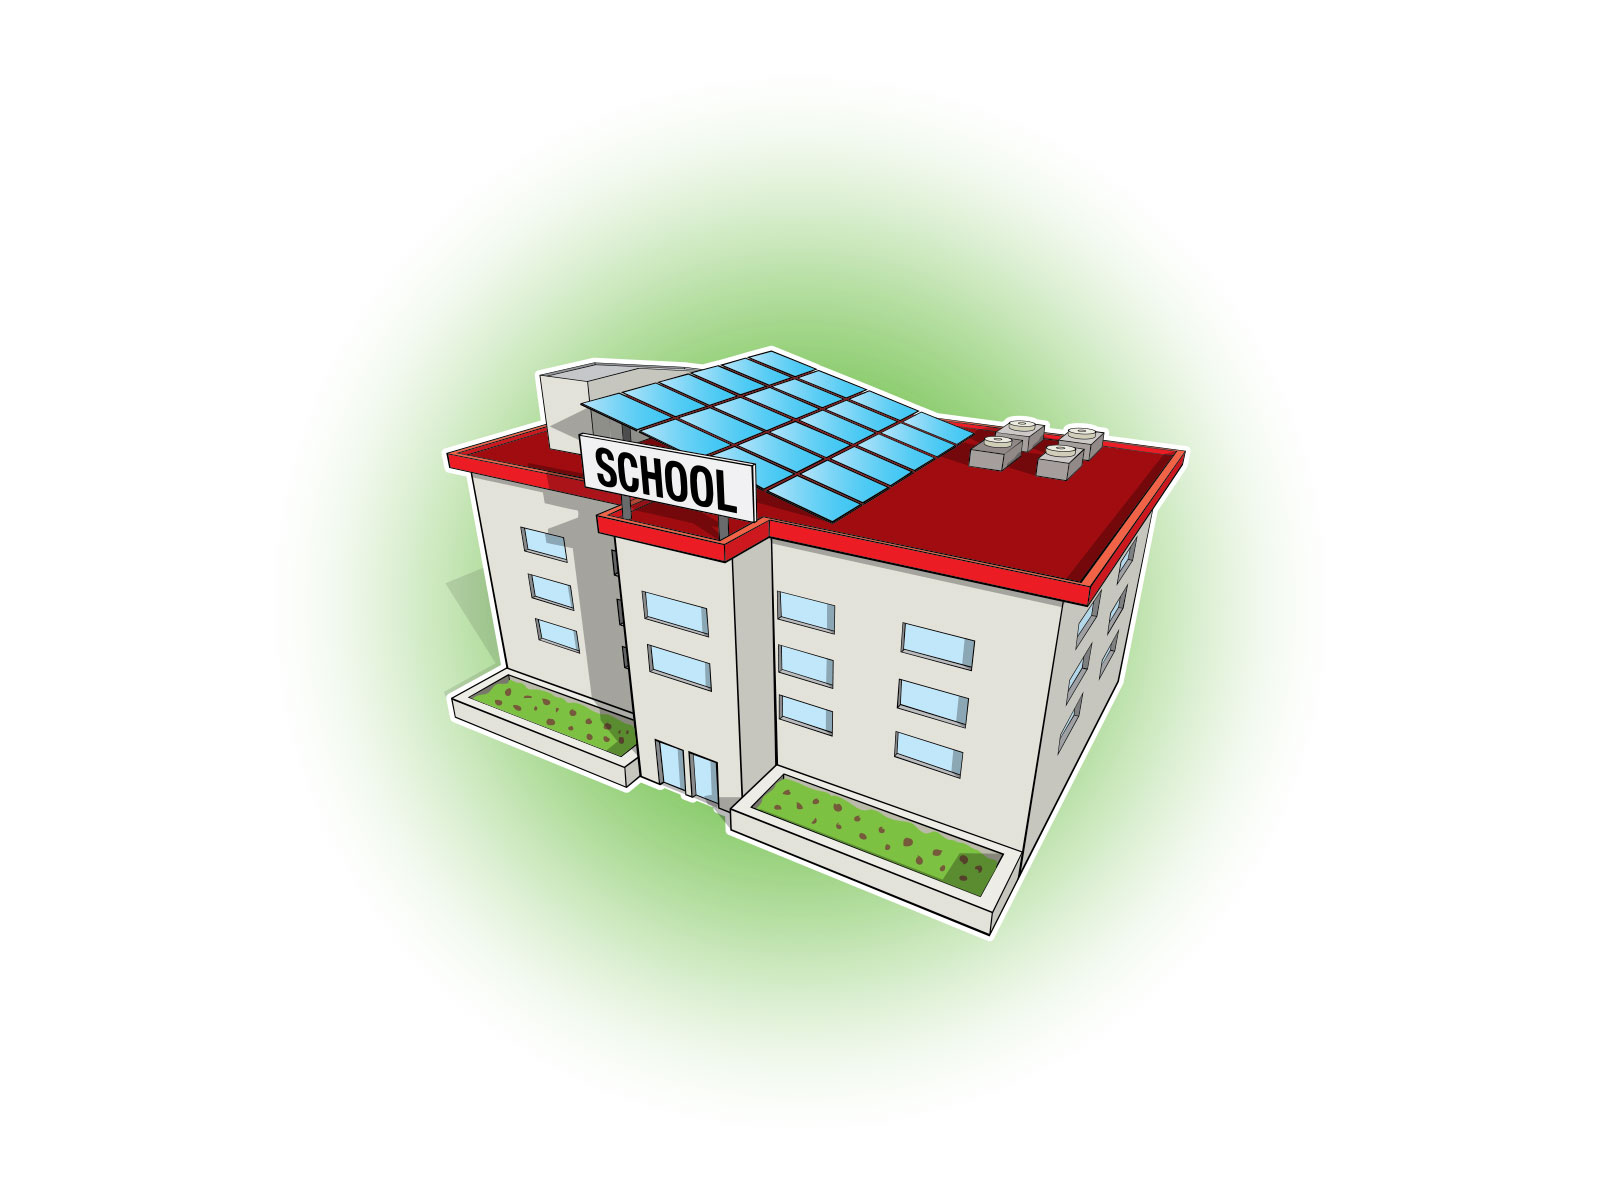 Stylised vector illustrations of school with solar panels